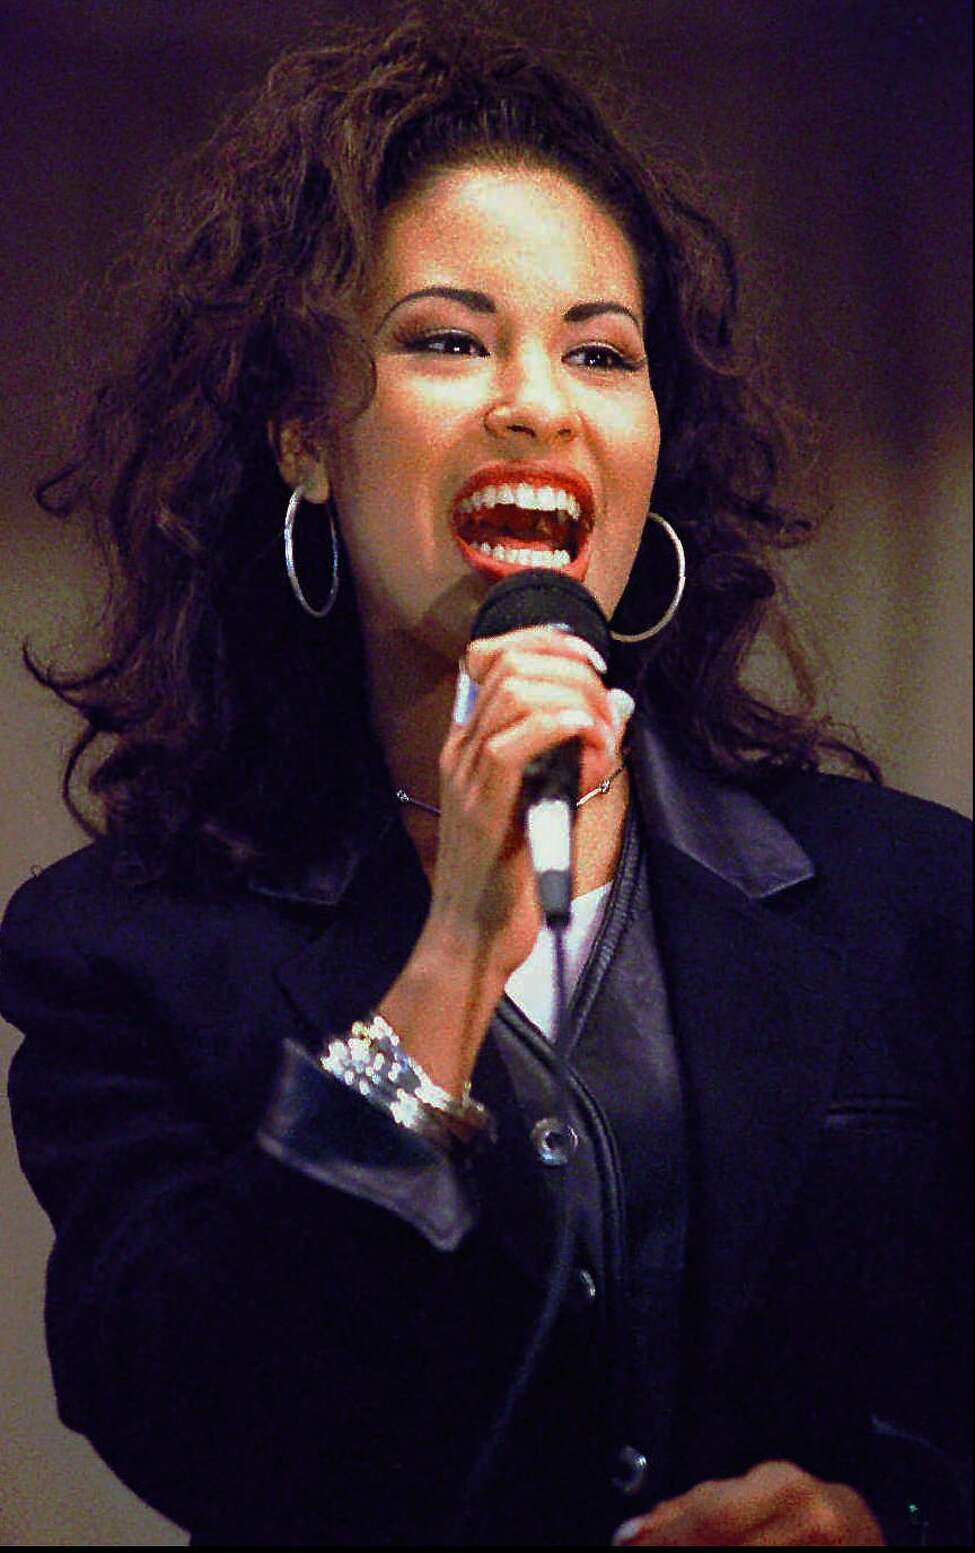 **FILE**Selena sings at the Cunningham Elementary School in Corpus Christi, Texas, in this Nov. 14, 1994 file photo. A decade after Selena was gunned down by the president of her fan club, her music legacy continues to thrive, winning over thousands of new fans, many of them young girls born after she died. (AP Photo/George Gongora-Corpus Christi Caller-Times)